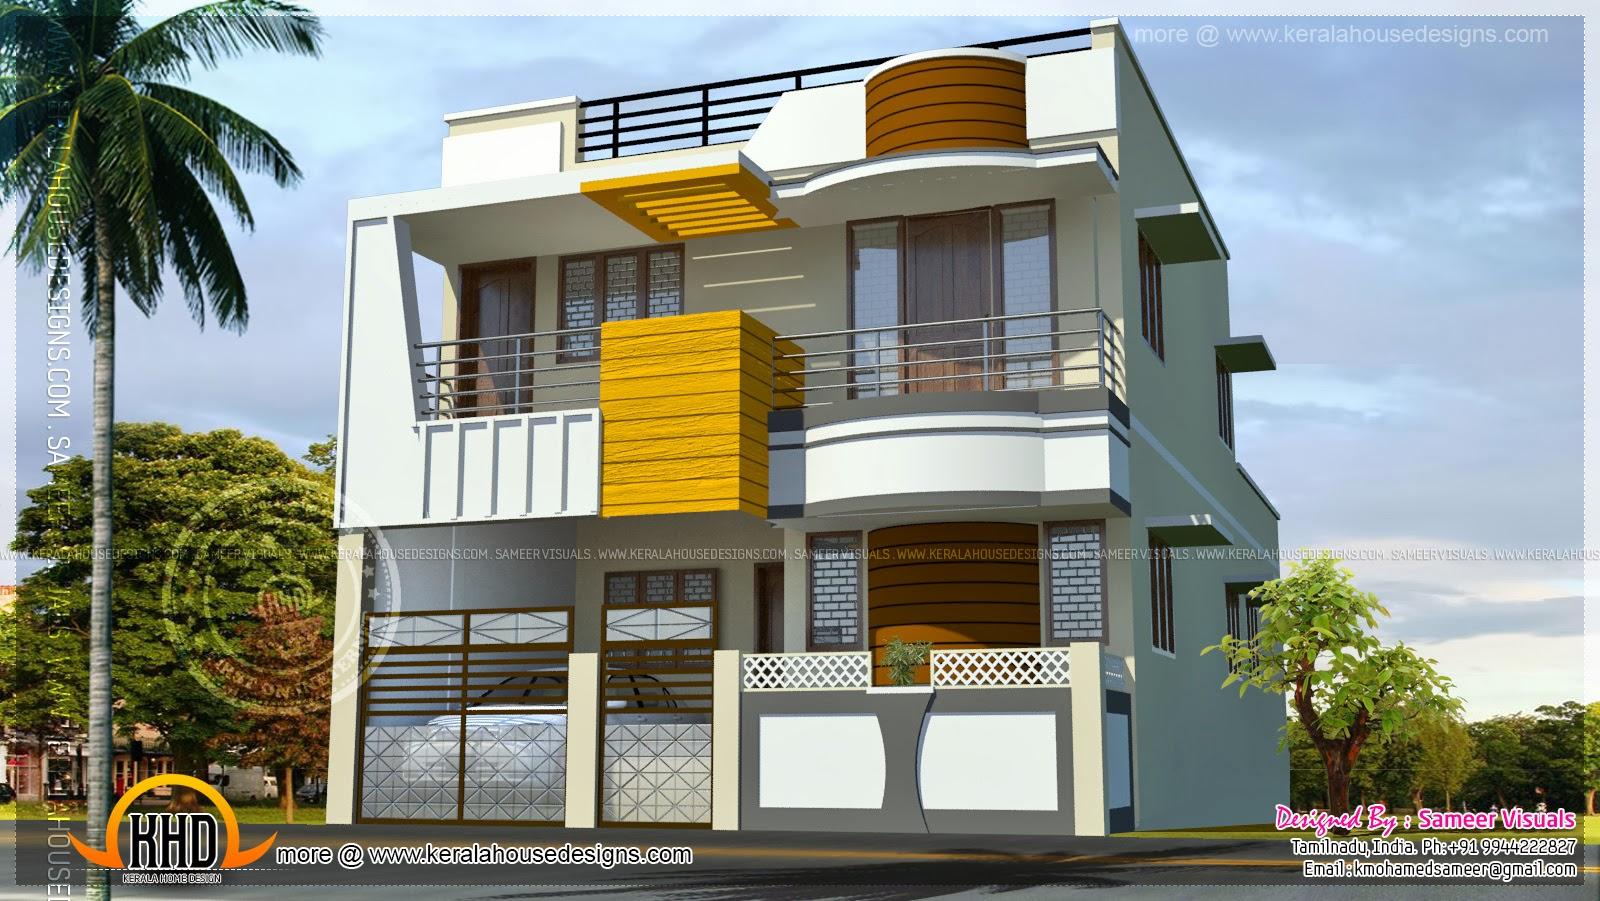 Double storied modern south indian home kerala home for Free home designs india